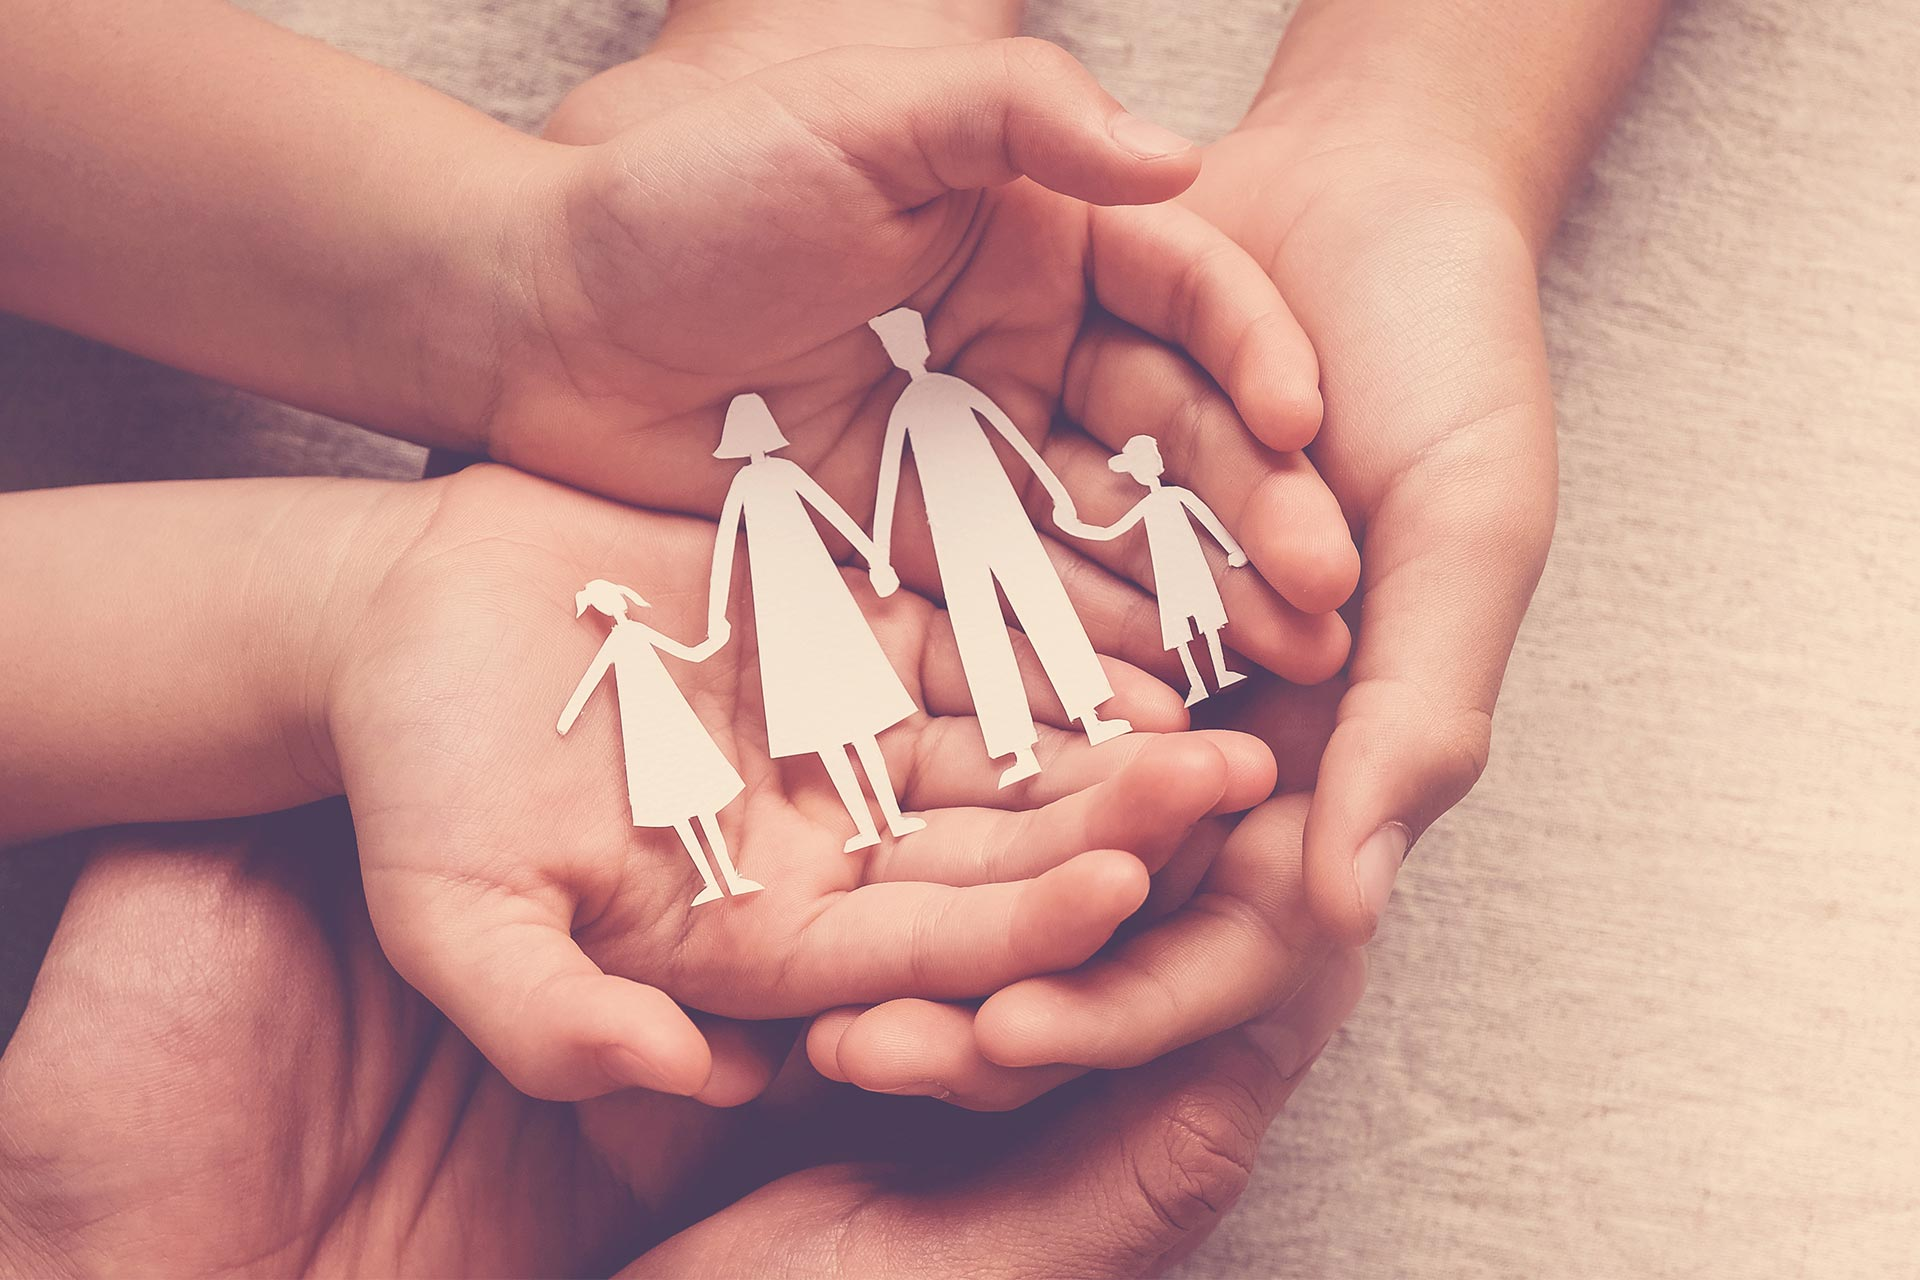 FREE consultations with our Family Law experts